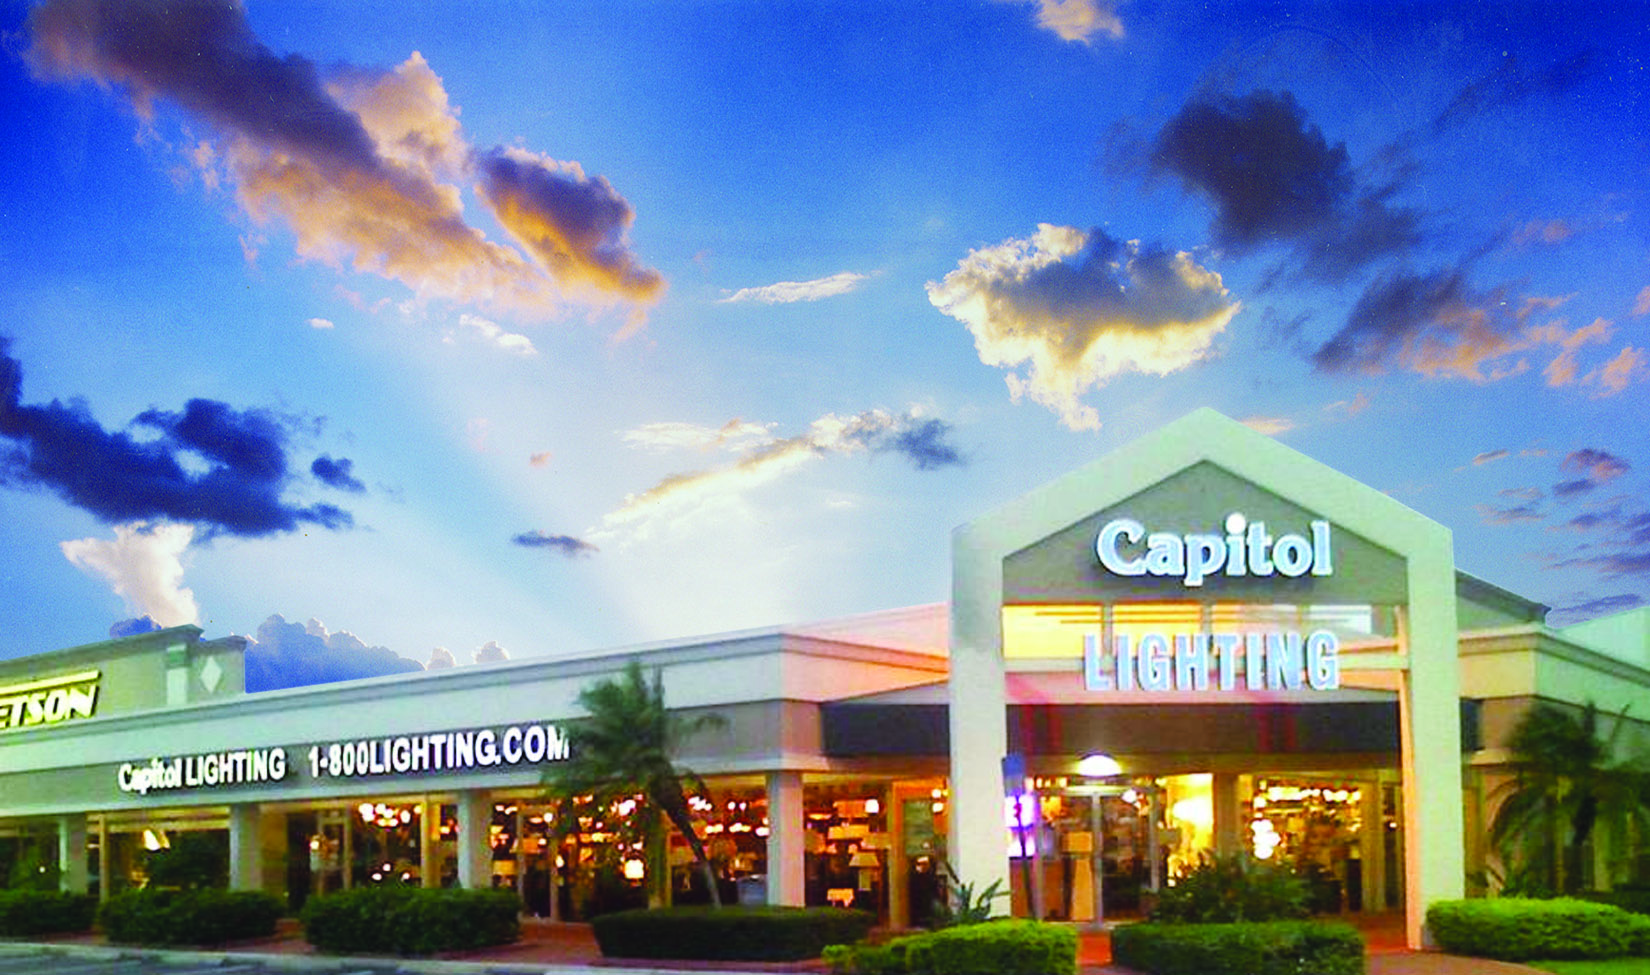 Capitol Lighting 2793 S State Road 7 Wellington Fl 33414 Yp